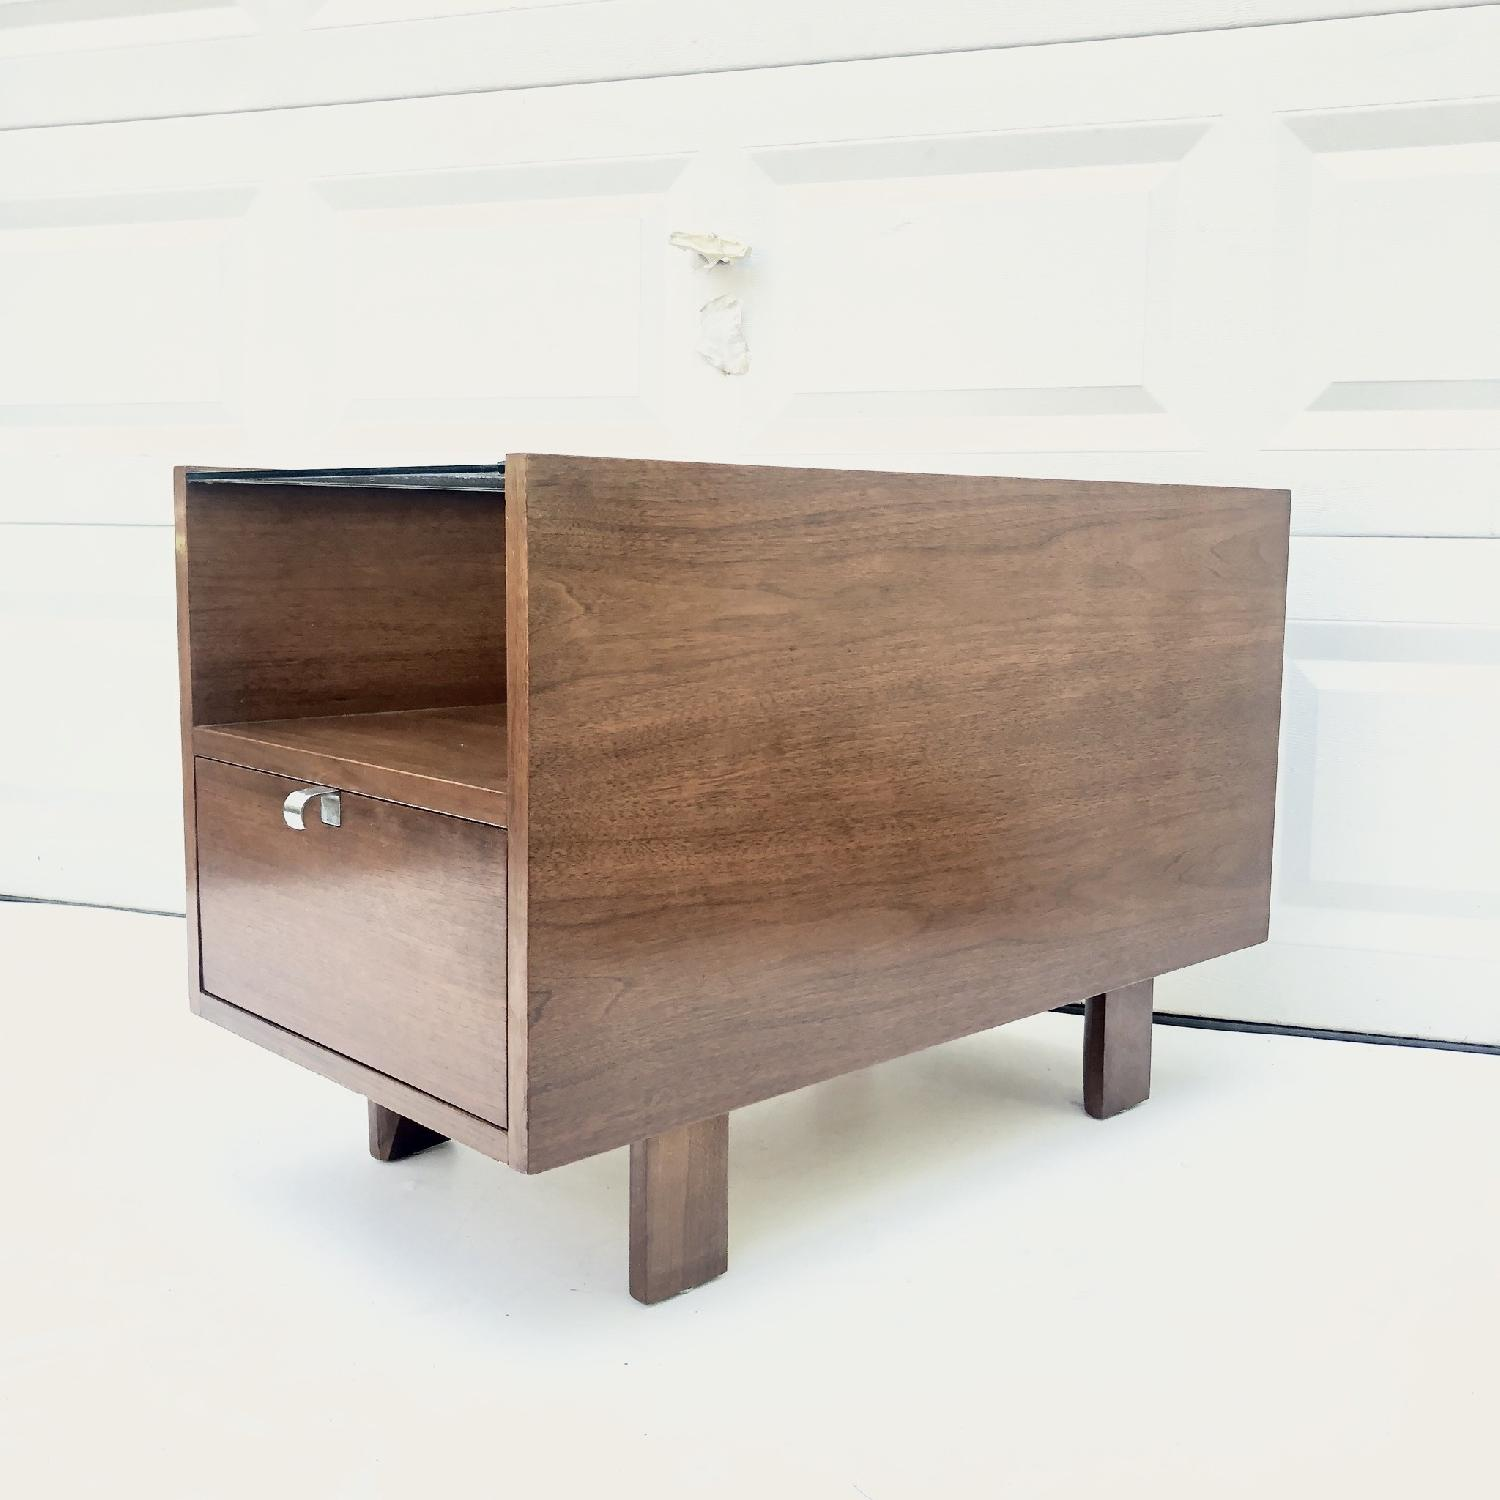 Herman Miller Side Tables by George Nelson - image-10